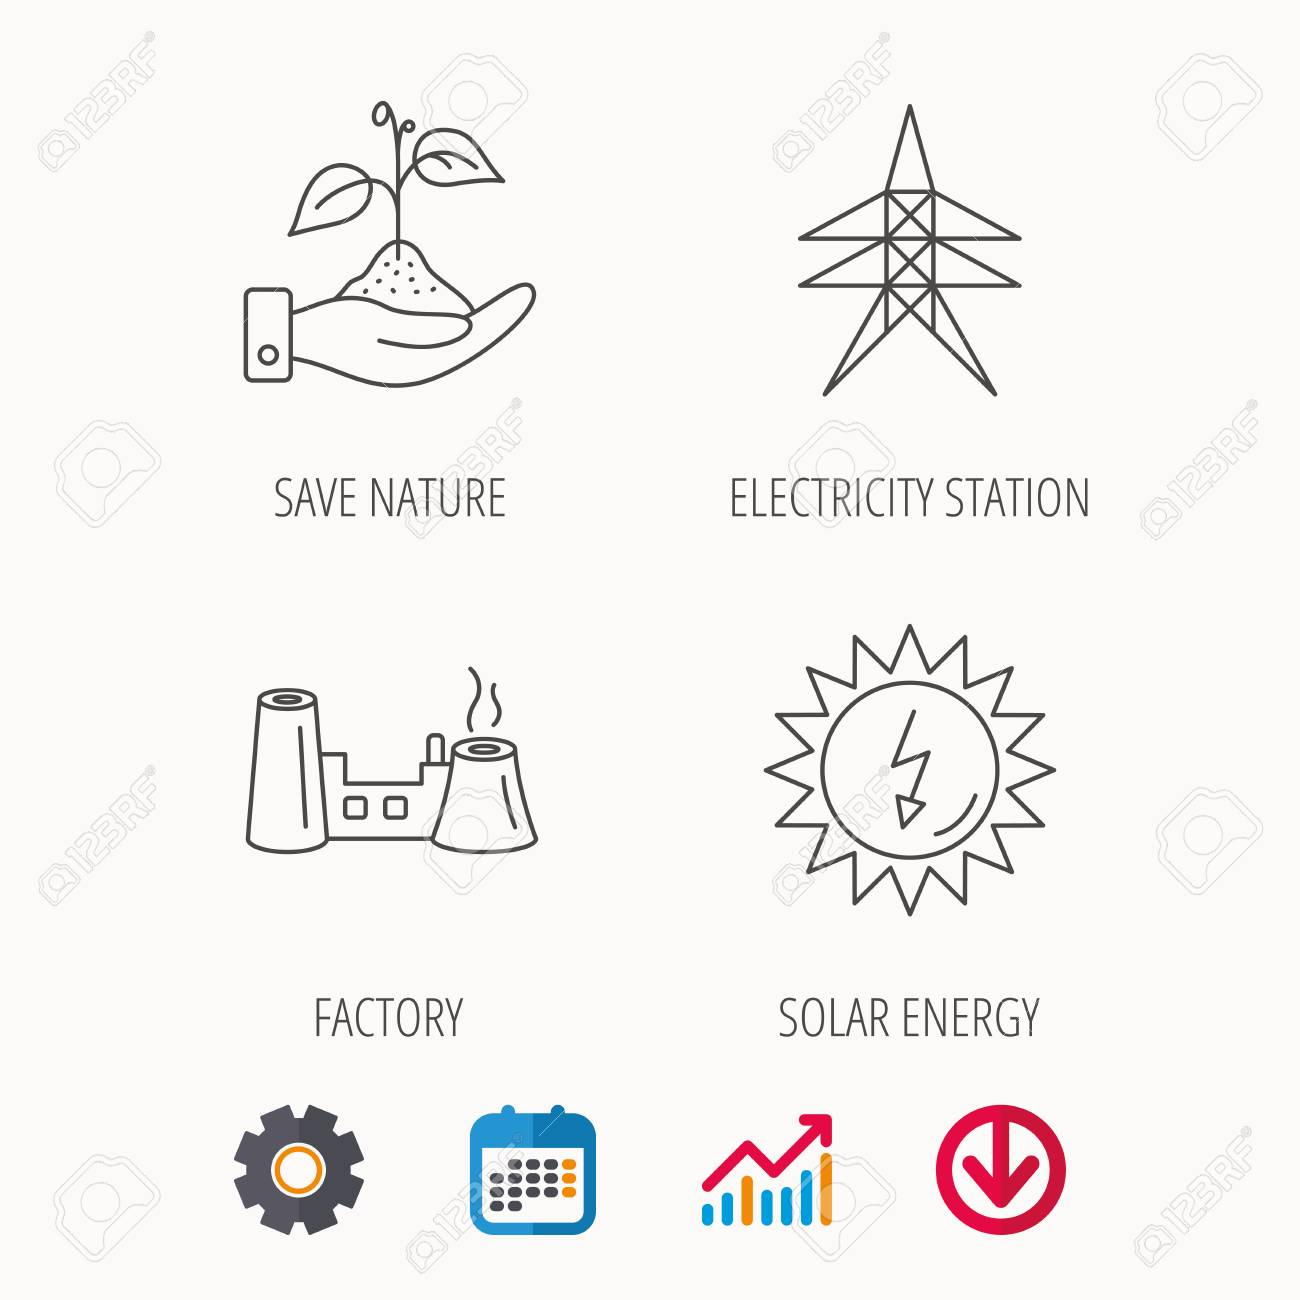 Electricity Web Diagram Wiring Diagrams Source Of Station Factory And Solar Energy Icons Save Nature Ford Ranger Electrical